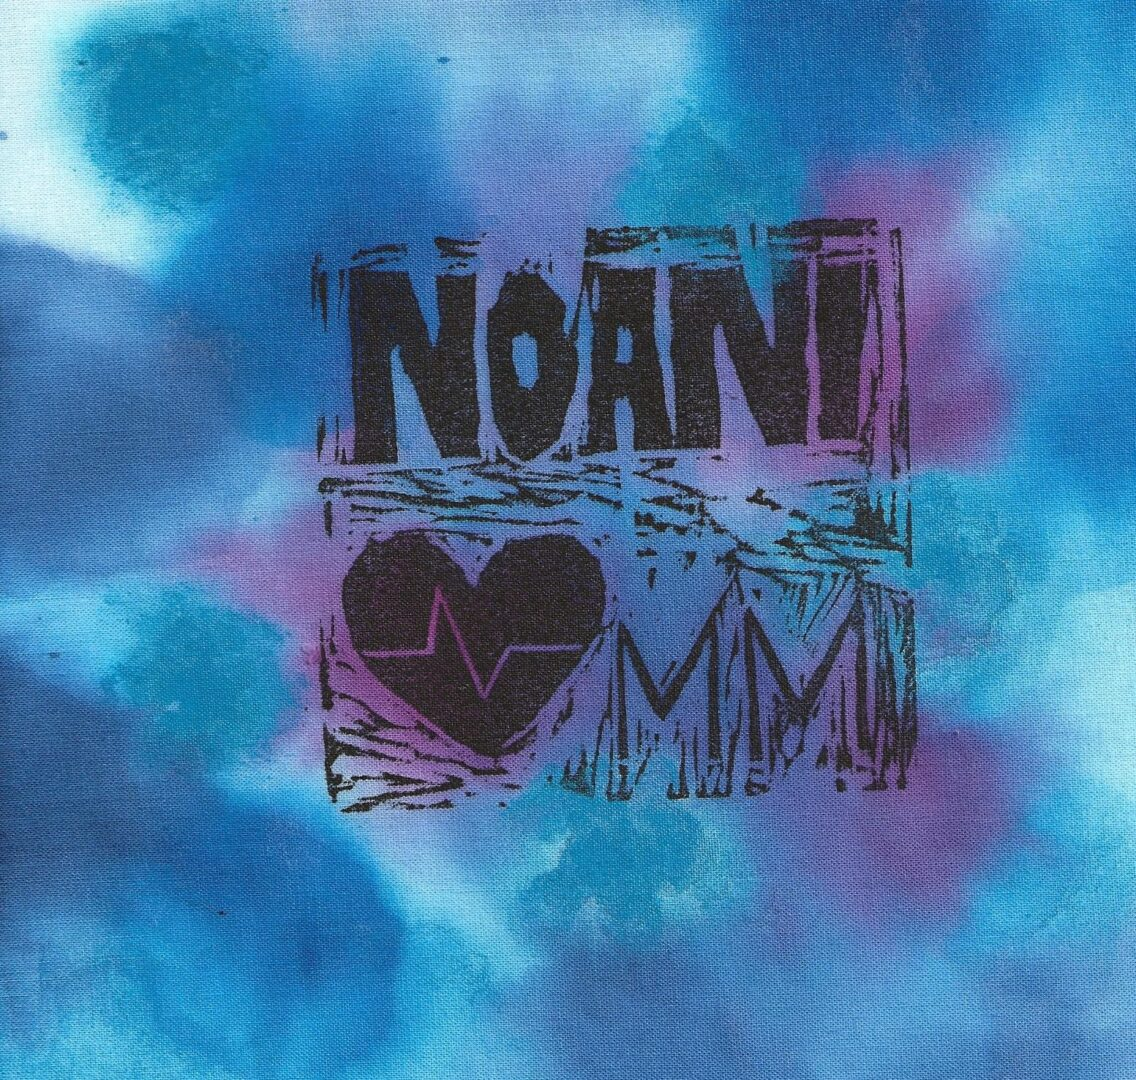 IN HONOR OF MY NOANI WHO IS A NURSE